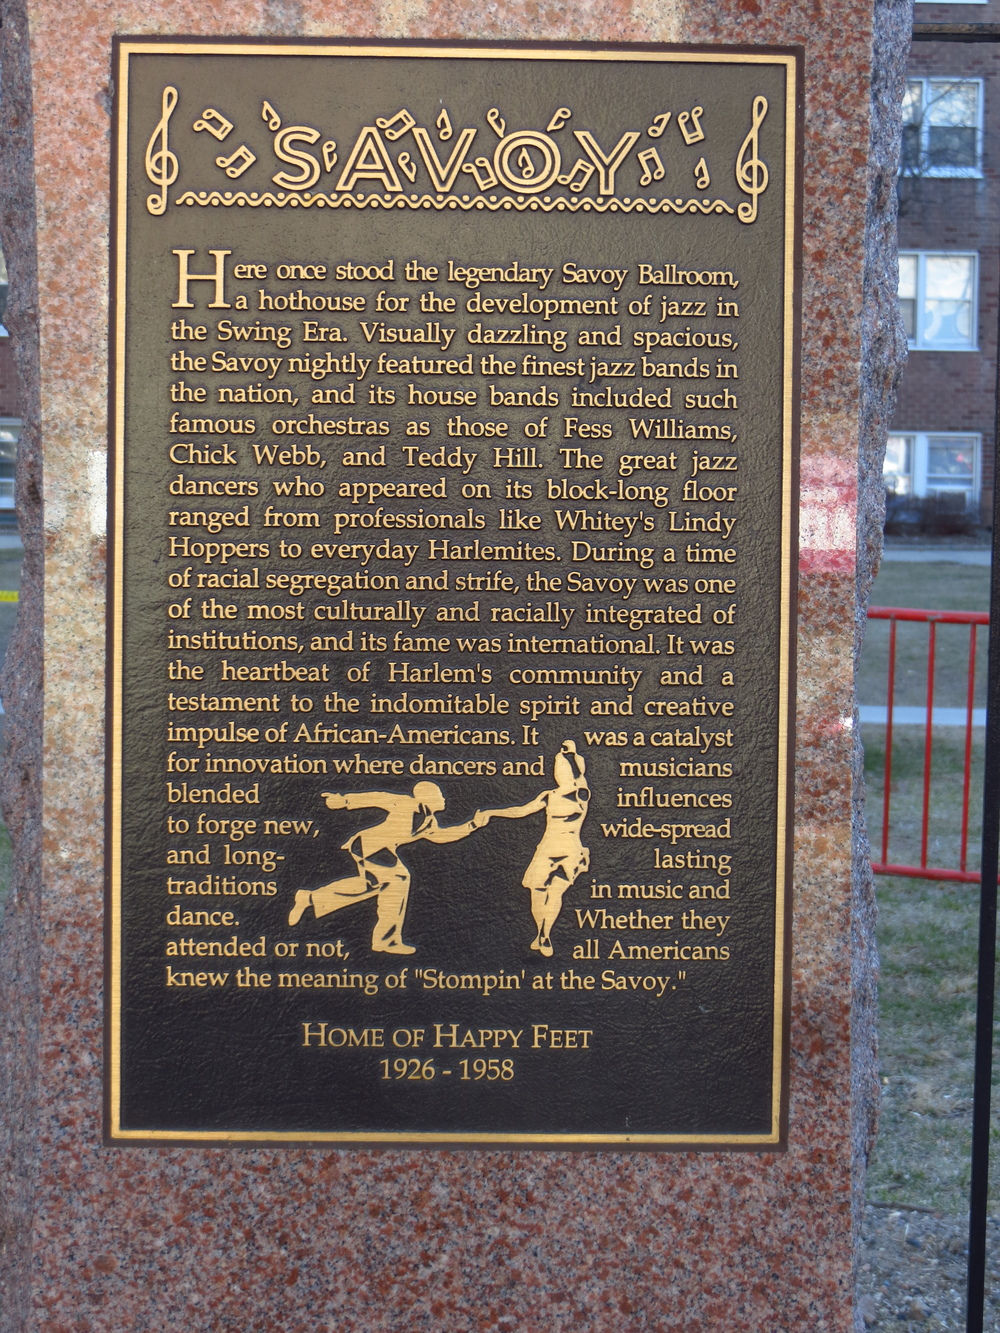 Former site of the Savoy Ballroom